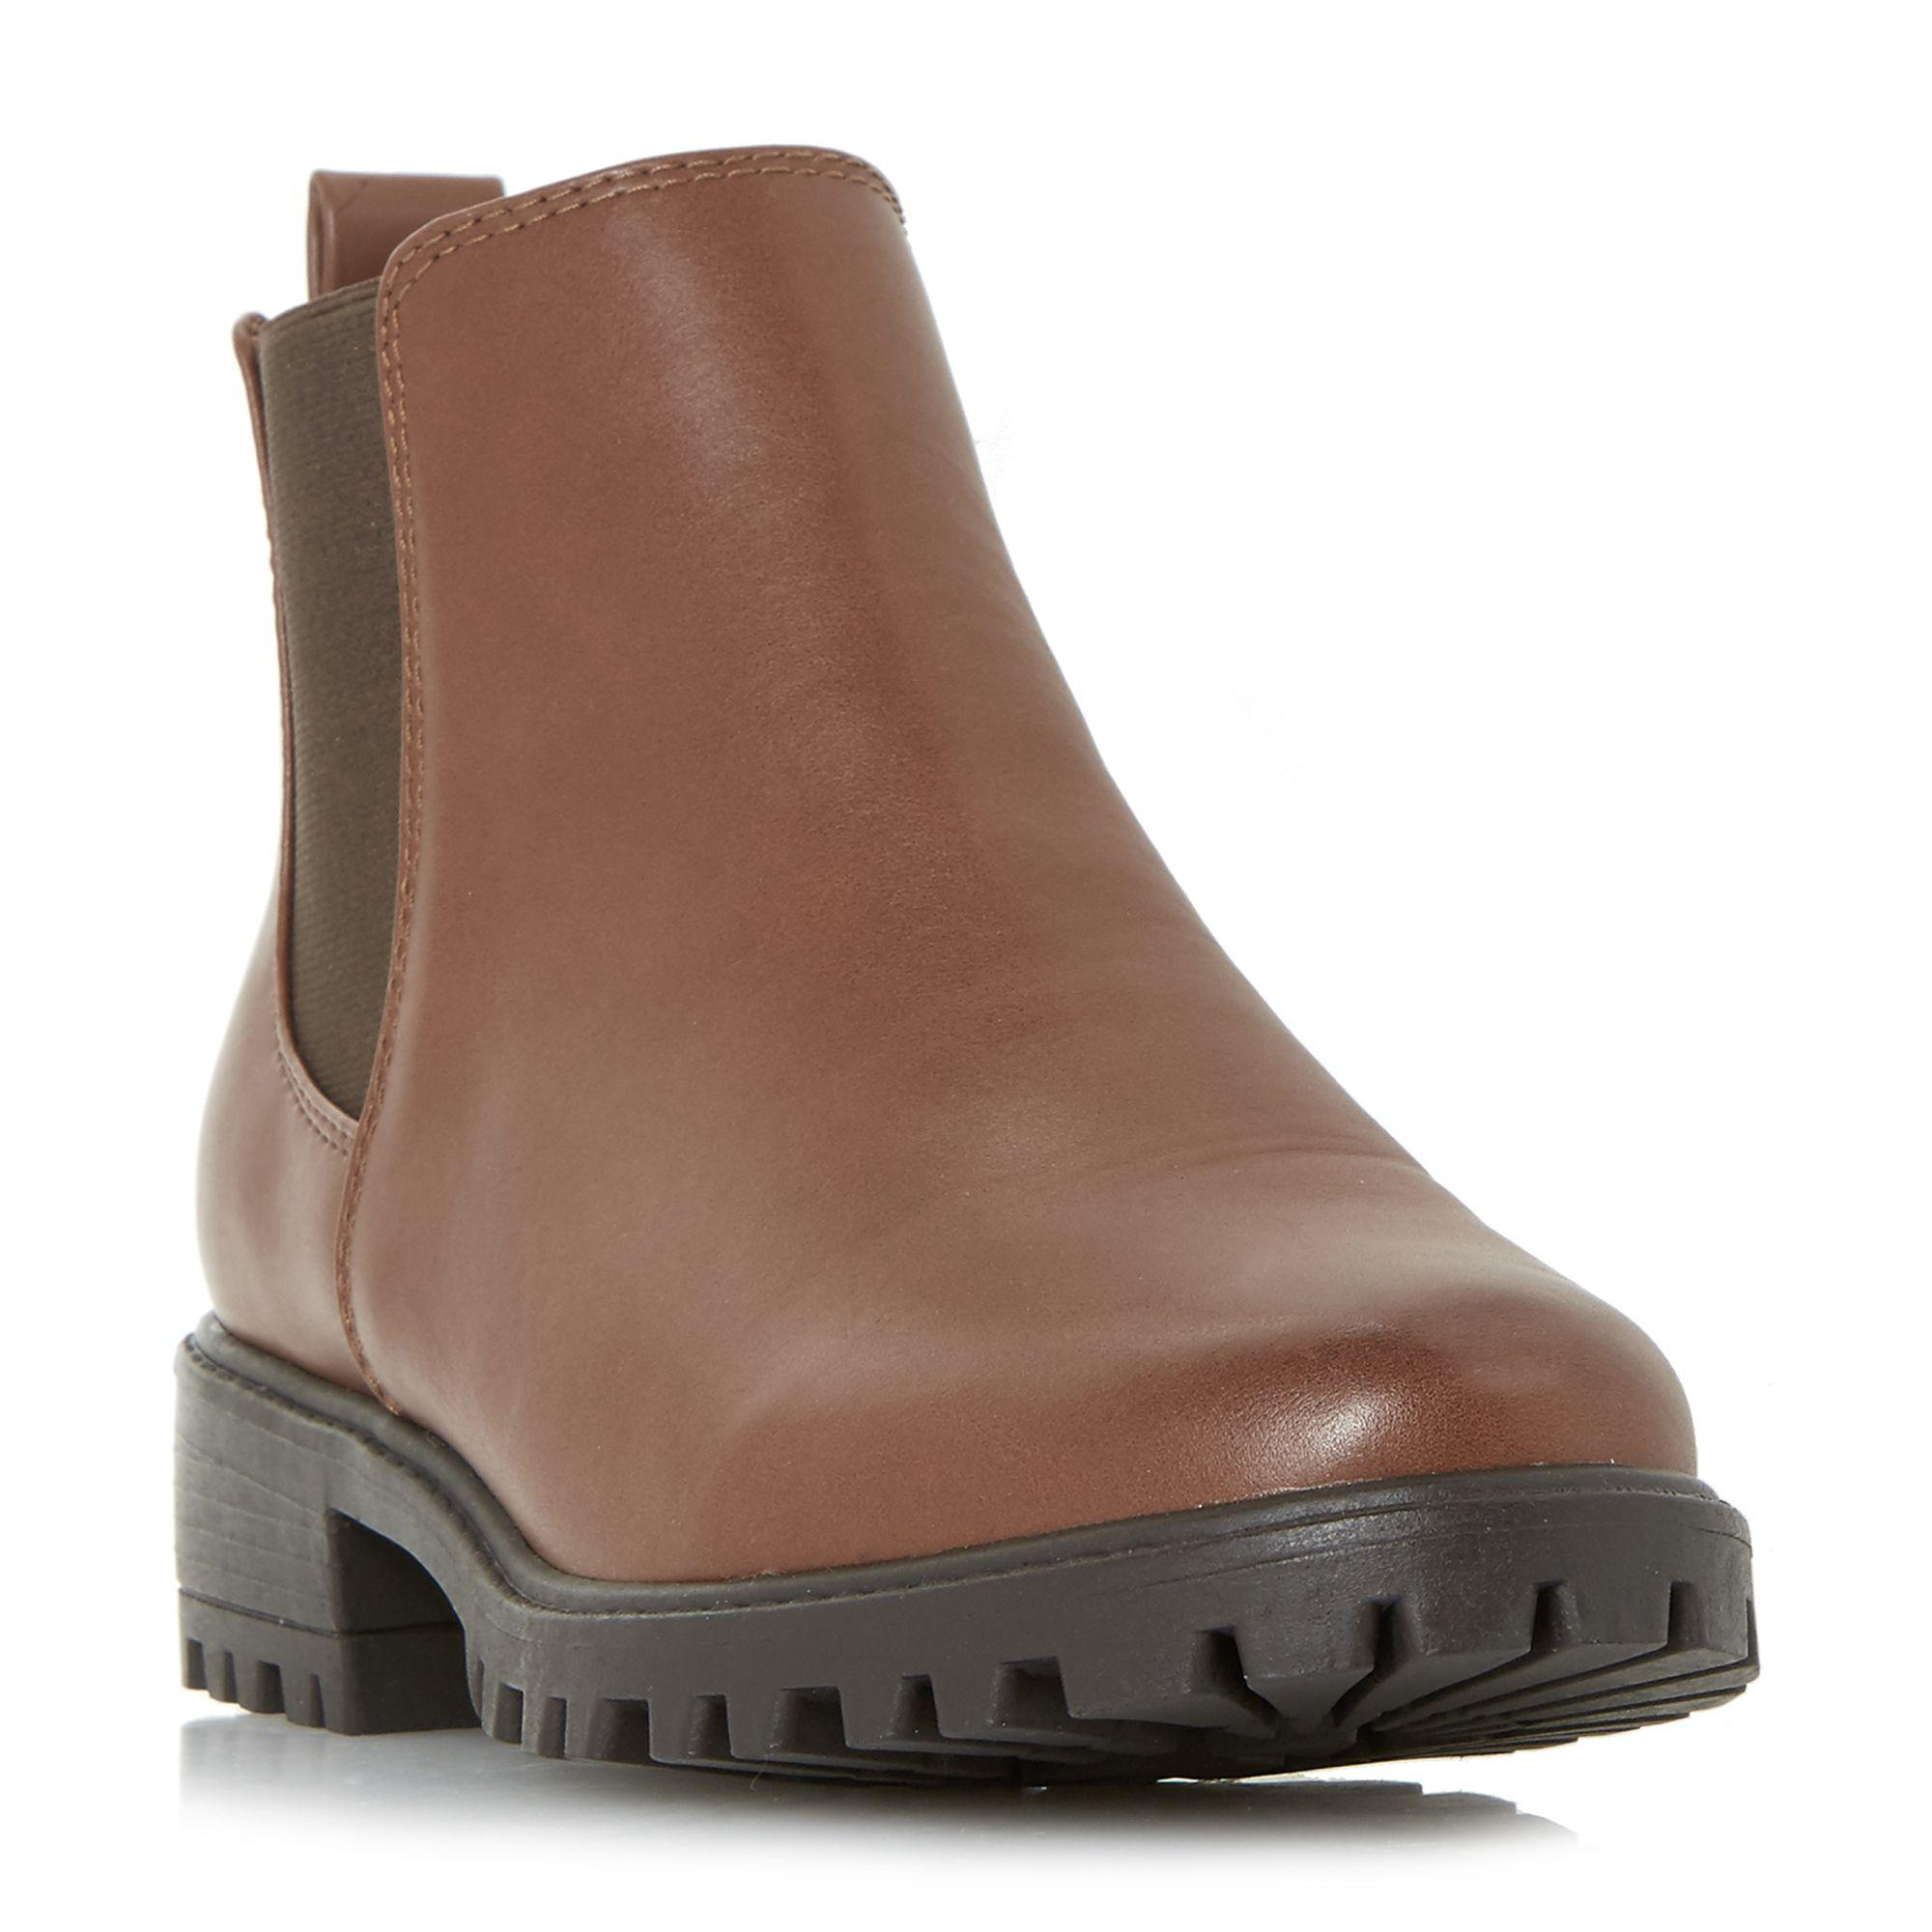 75321050efe Dune Tan  portiaa  Cleated Sole Chelsea Ankle Boots in Brown - Lyst